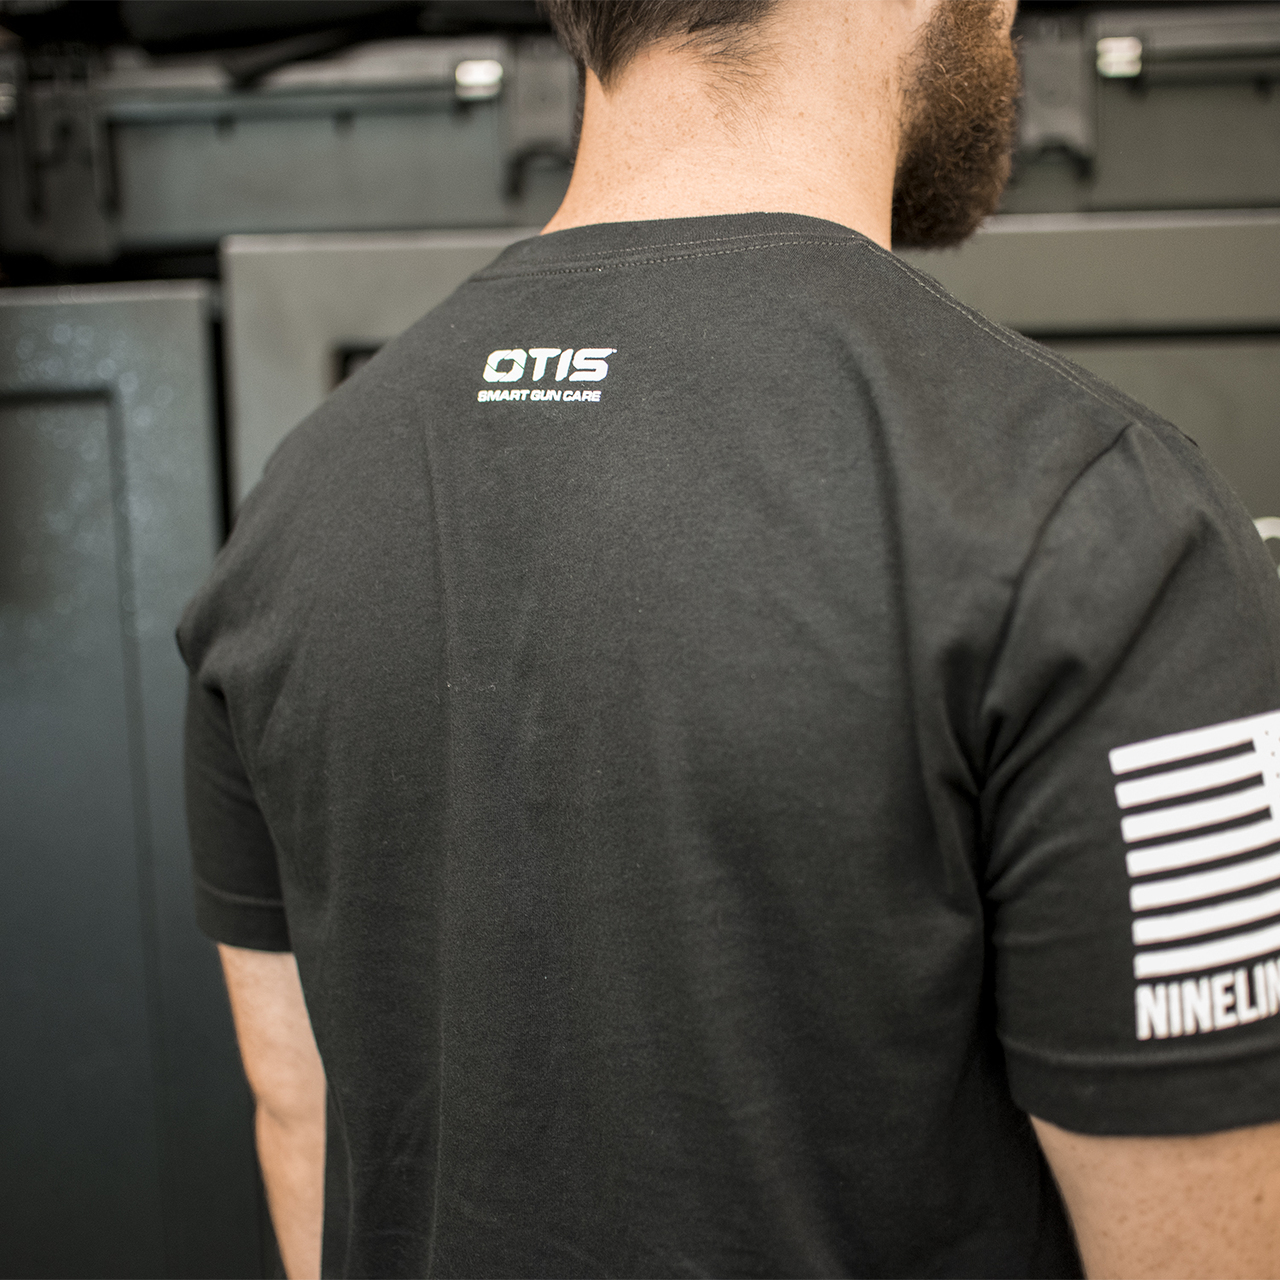 Otis Nine Line Plink T-Shirt